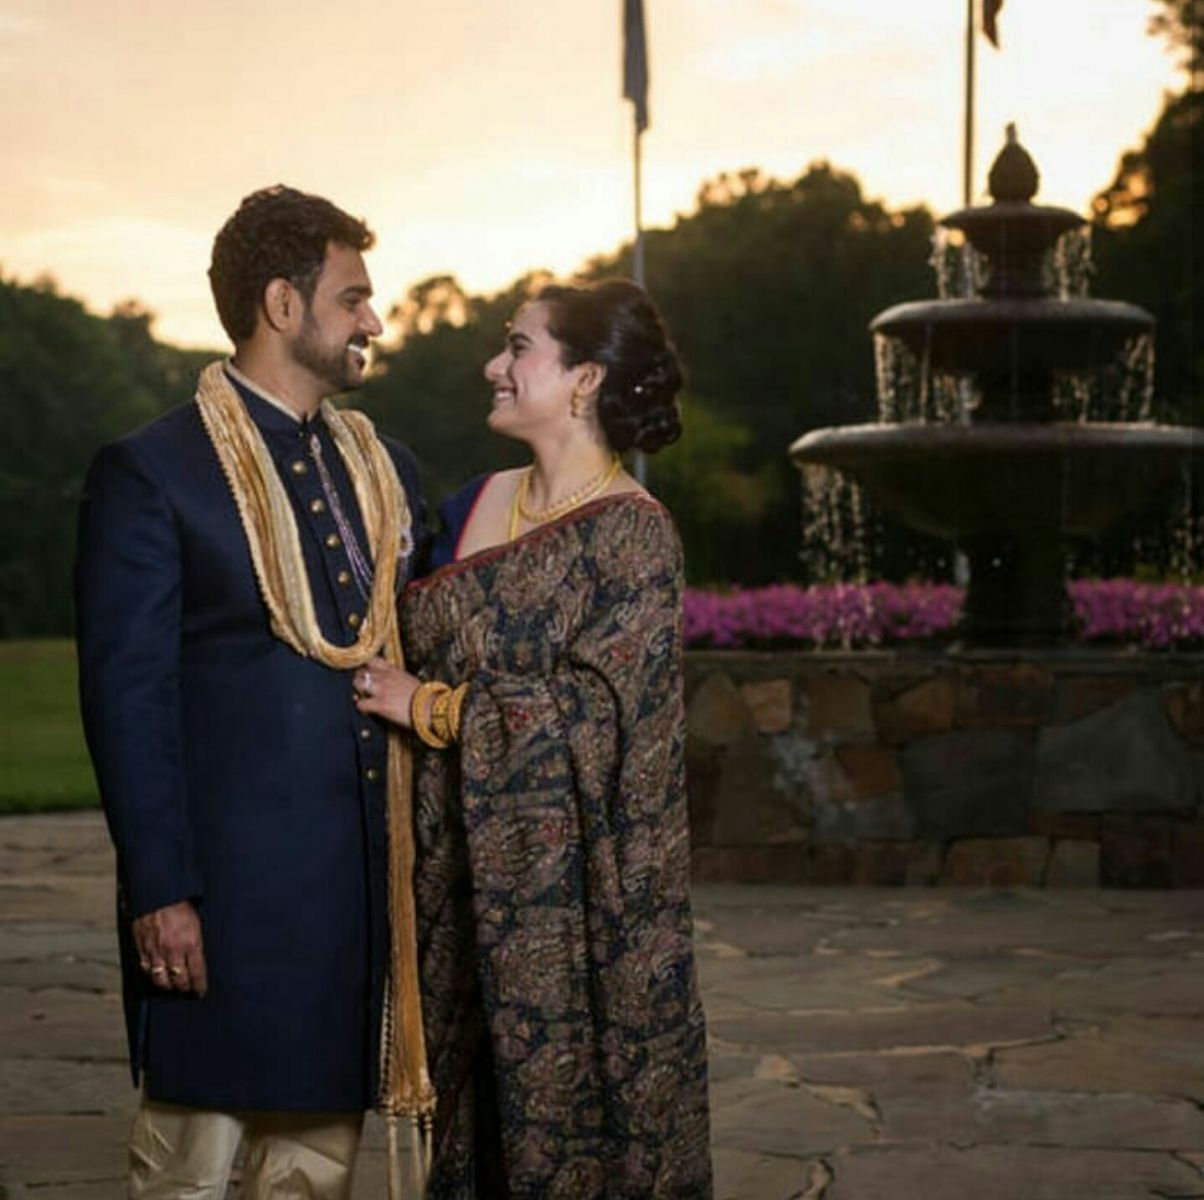 The Nivedita couple on their wedding day at Carolina Trace Country Club